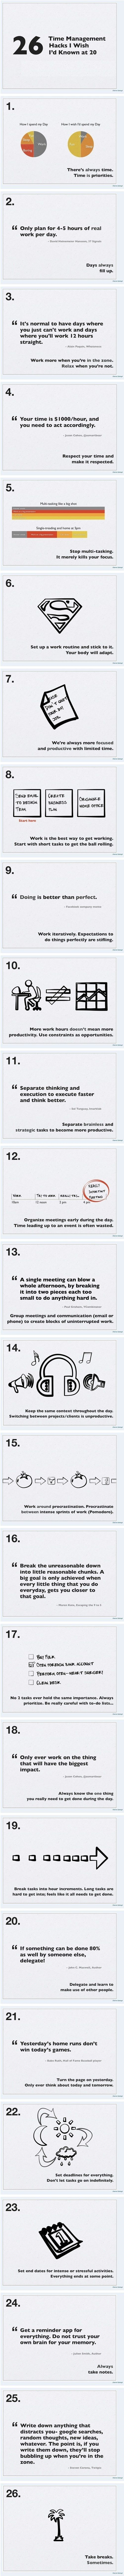 26 Time Managment Hacks for 20`s